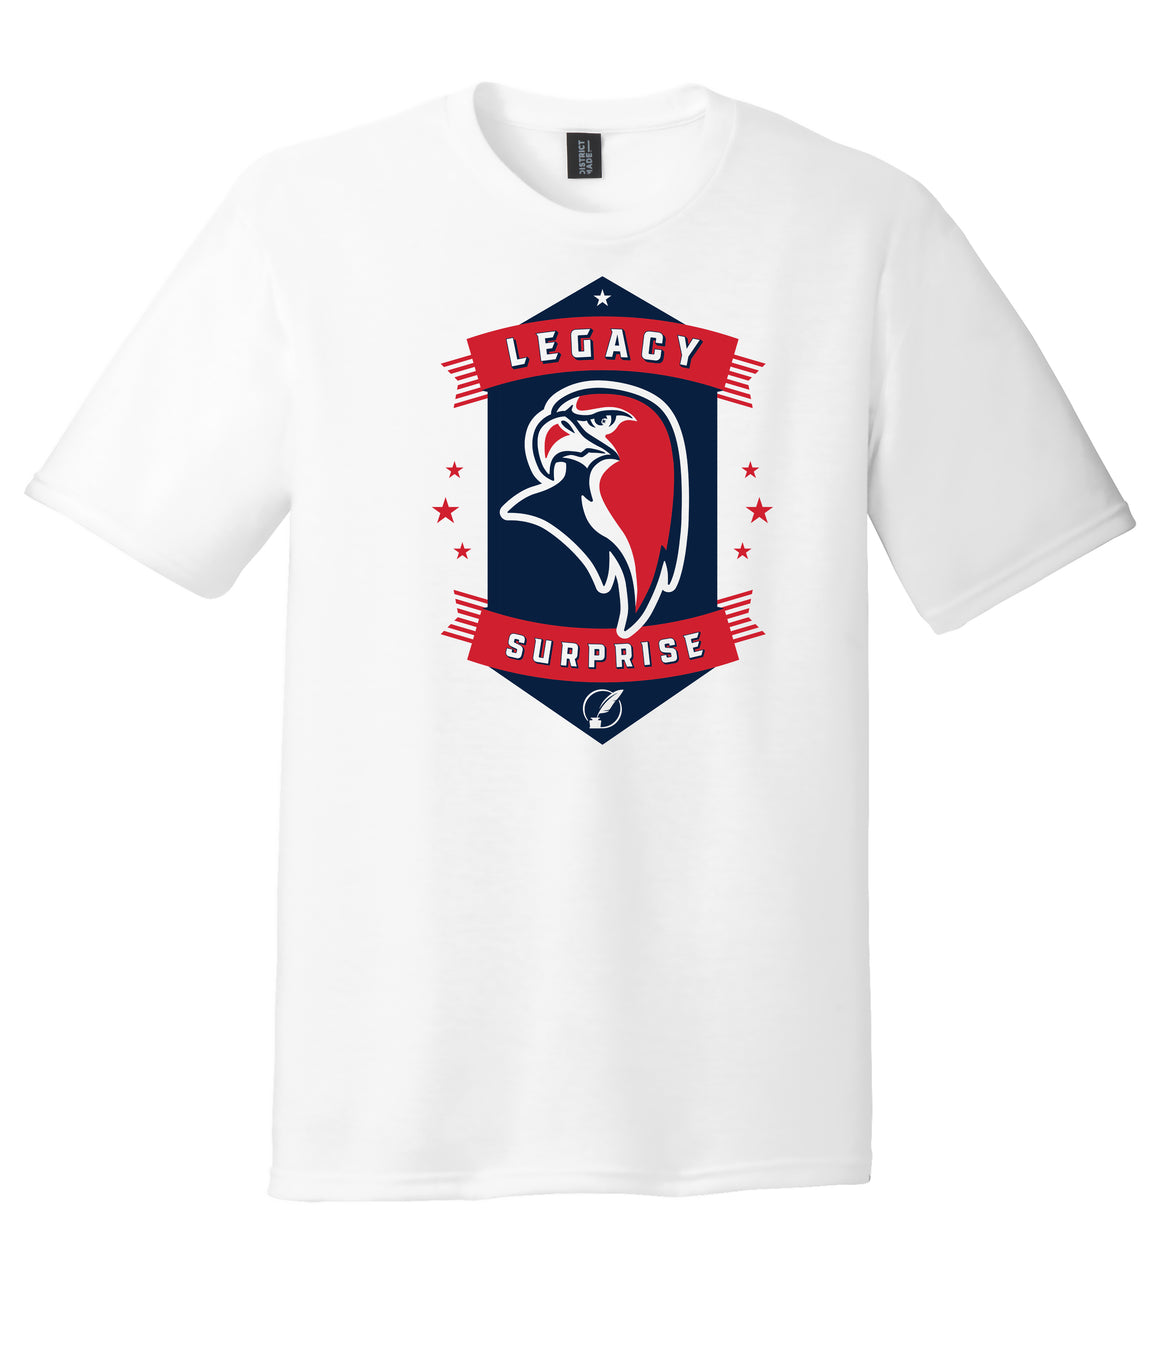 Legacy Traditional School Surprise - White Spirit Day Shirt w/Mascot